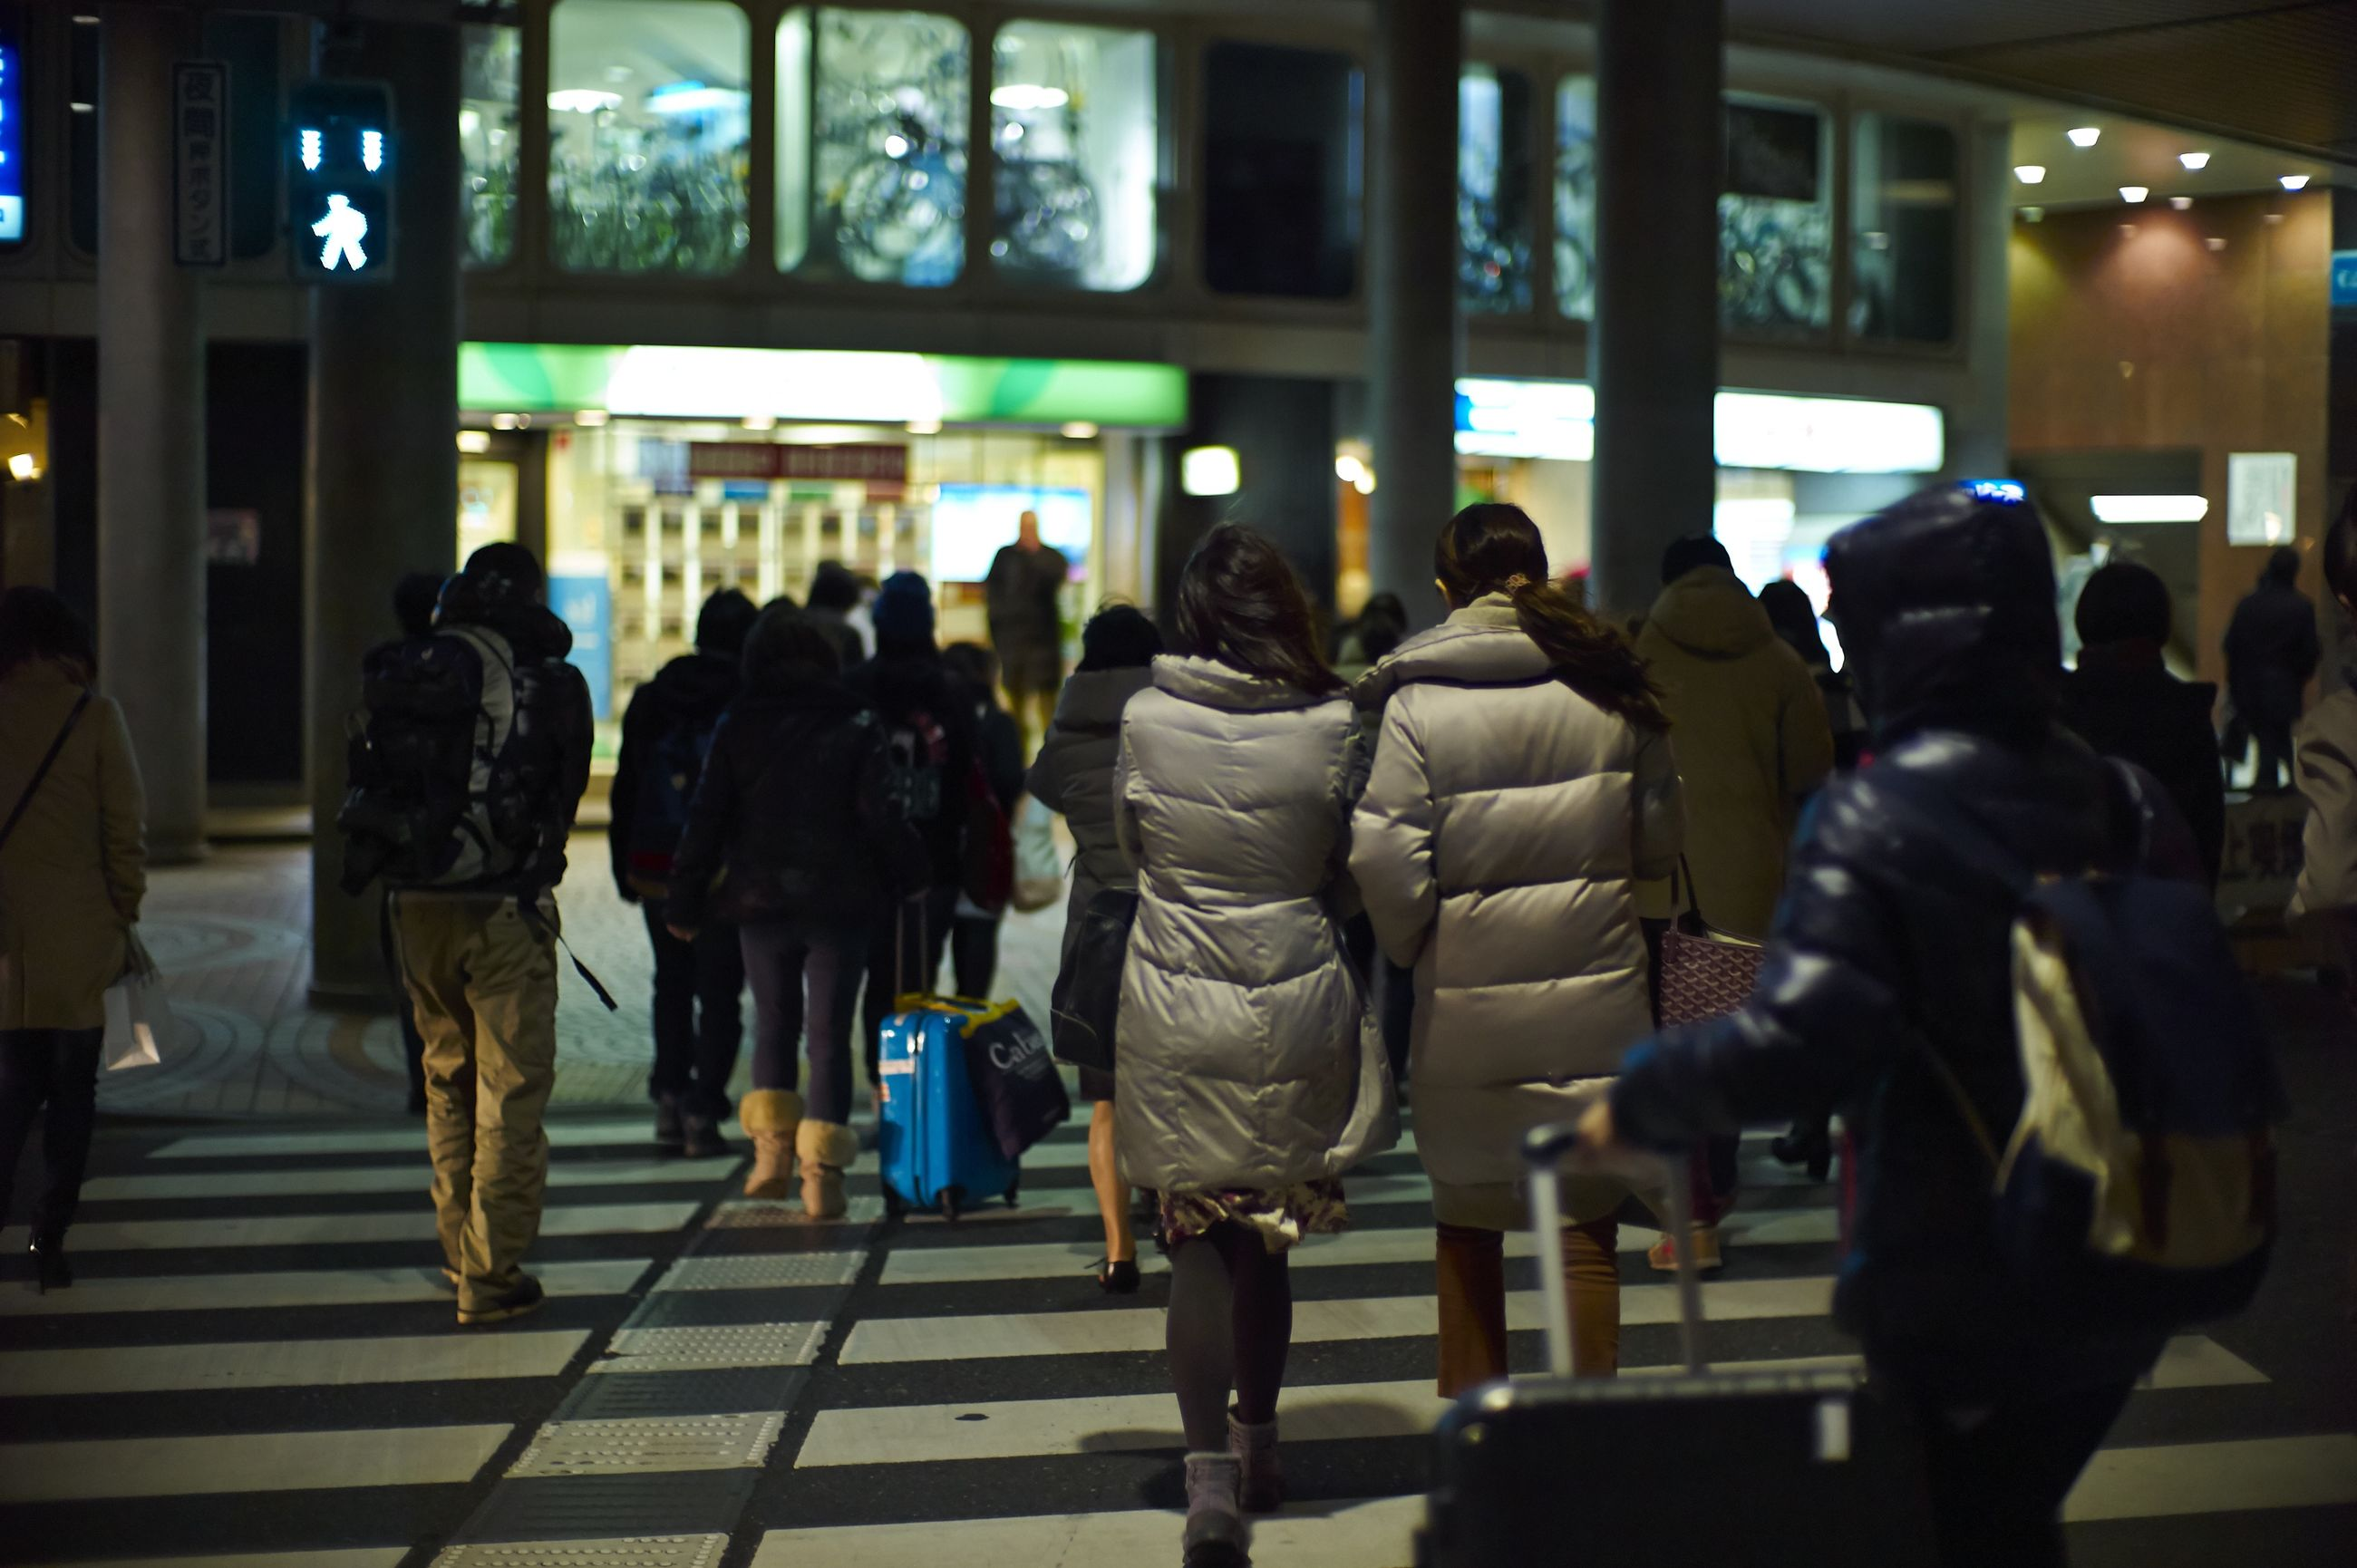 indoors, men, person, lifestyles, large group of people, illuminated, walking, standing, leisure activity, night, built structure, railroad station, city life, medium group of people, architecture, group of people, rear view, city, public transportation